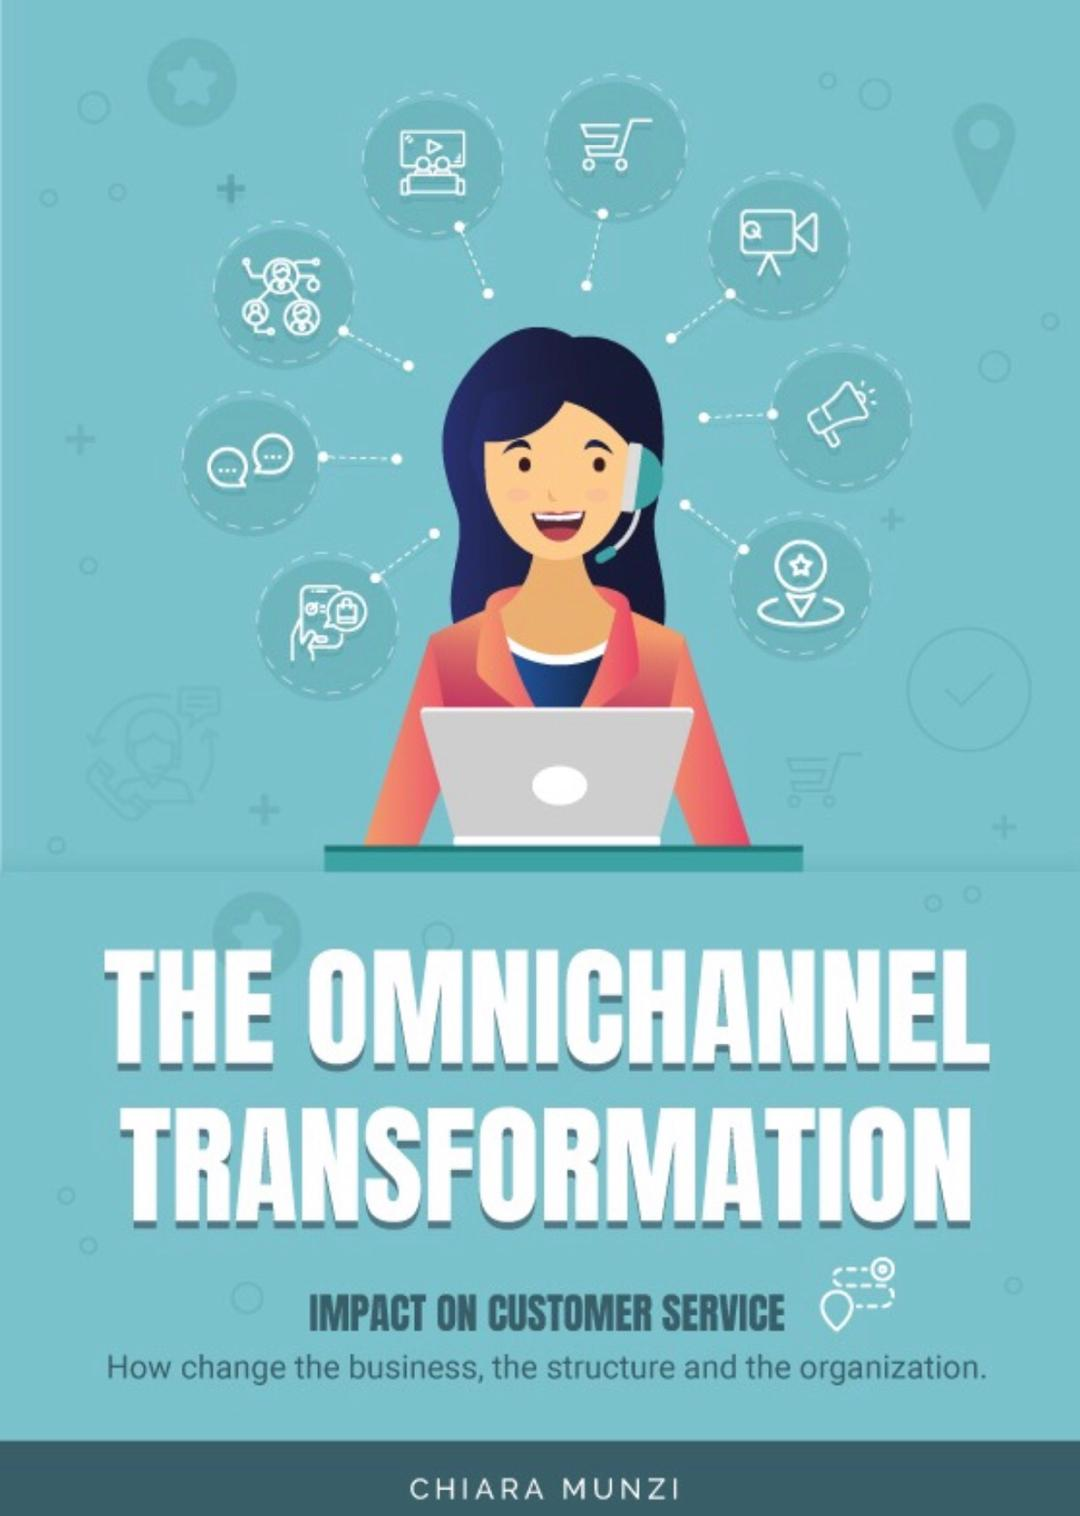 The Omnichannel Transformation